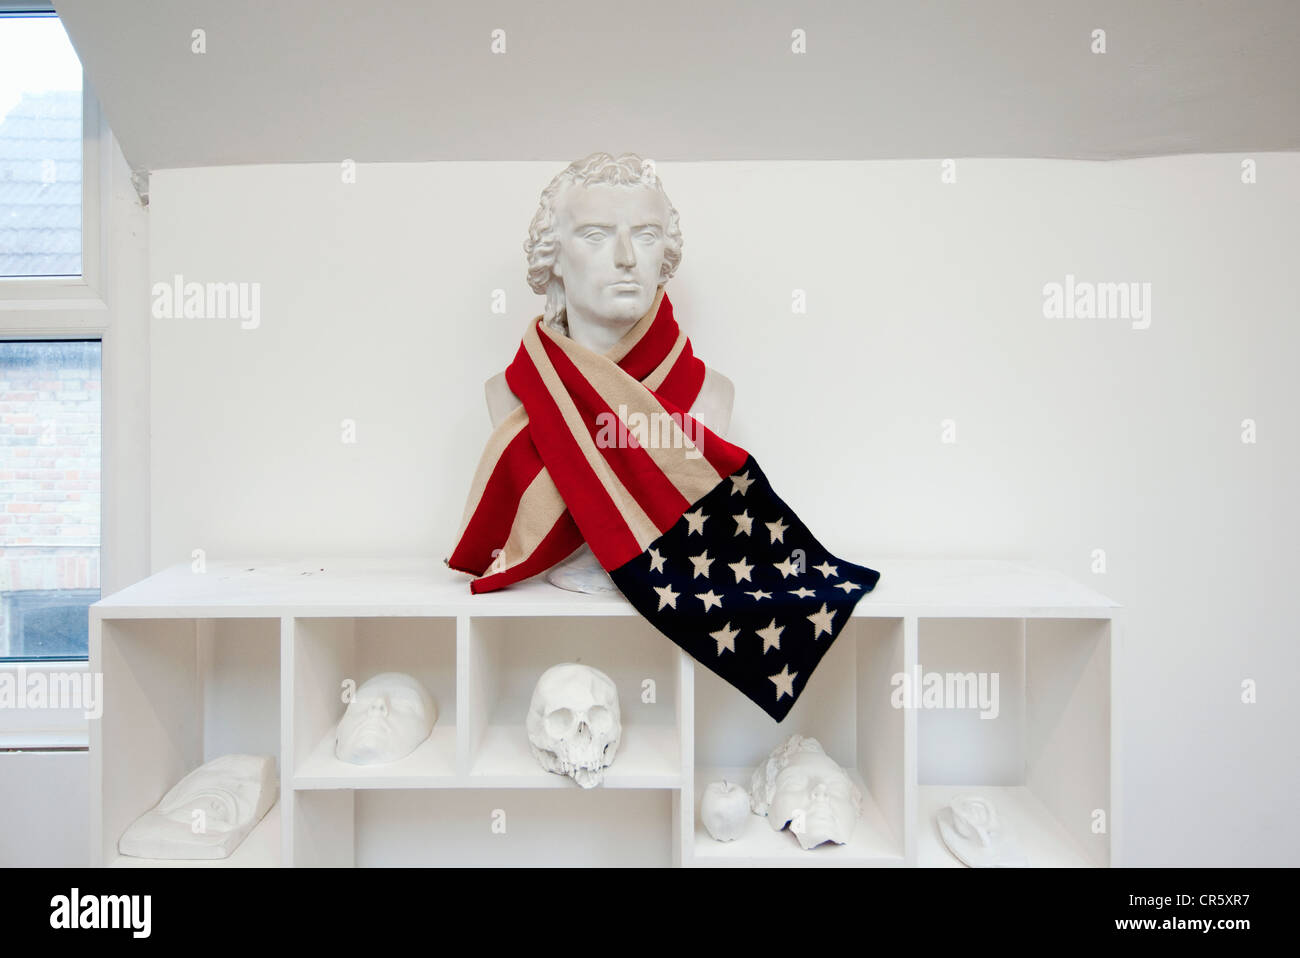 A Stars and Stripes American scarf draped around an anonymous bust in an artist's studio. - Stock Image